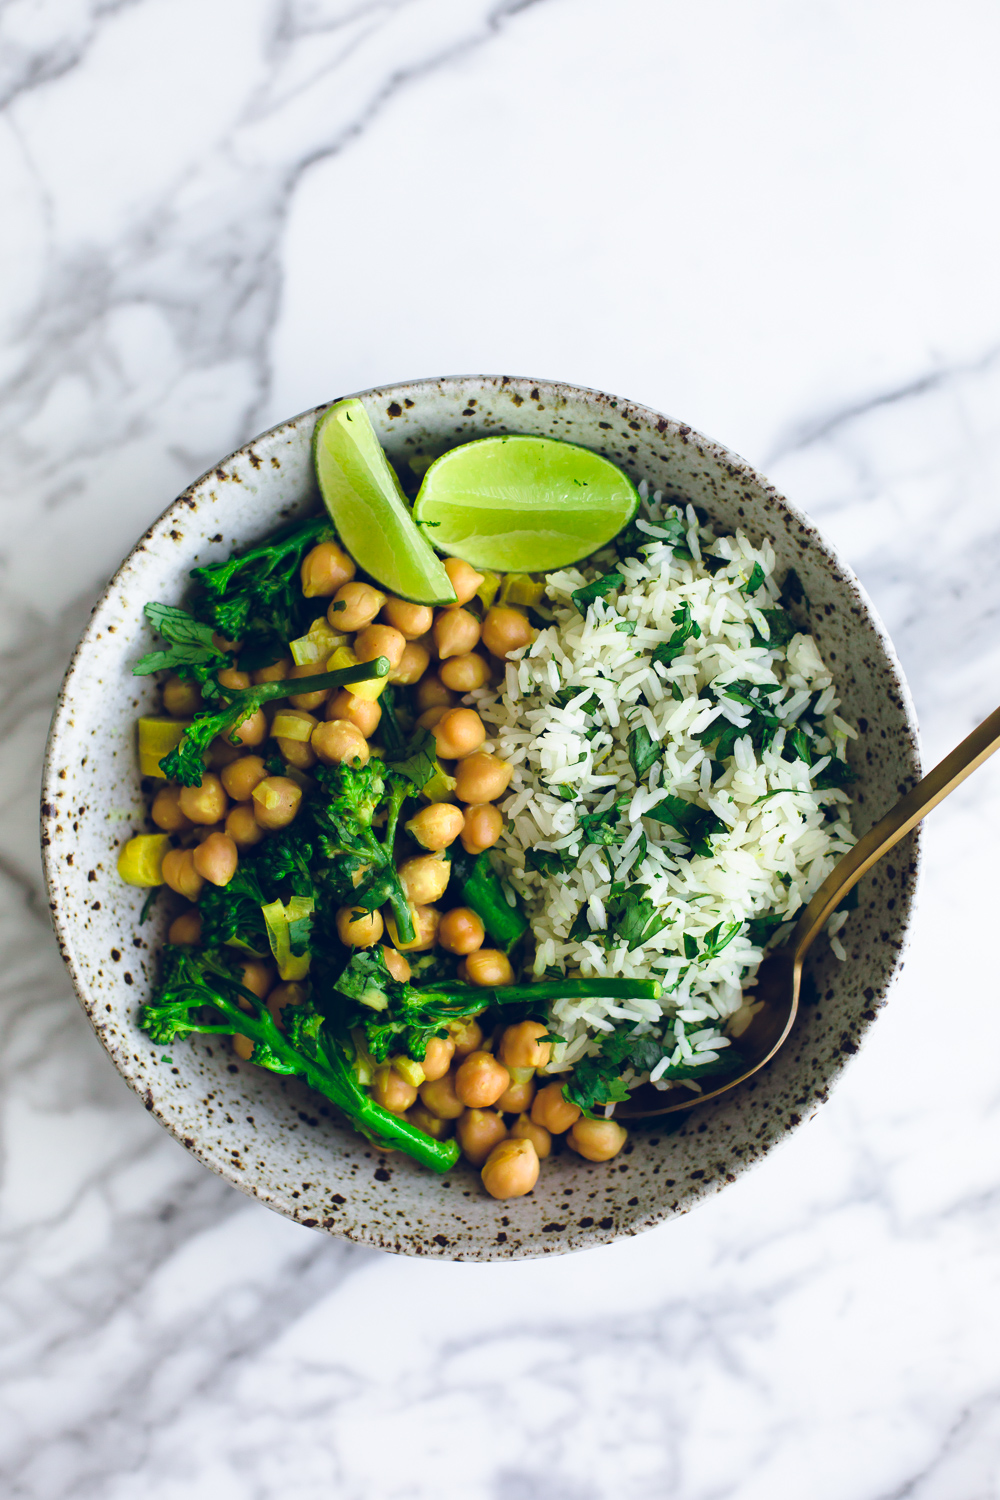 A delicious Quick Turmeric Chickpea Curry with Zingy Cilantro Lime Rice. Vegan, Gluten Free and ready in under 20 minutes. #vegan #turmeric #chickpea #curry #lime #cilantro #rice